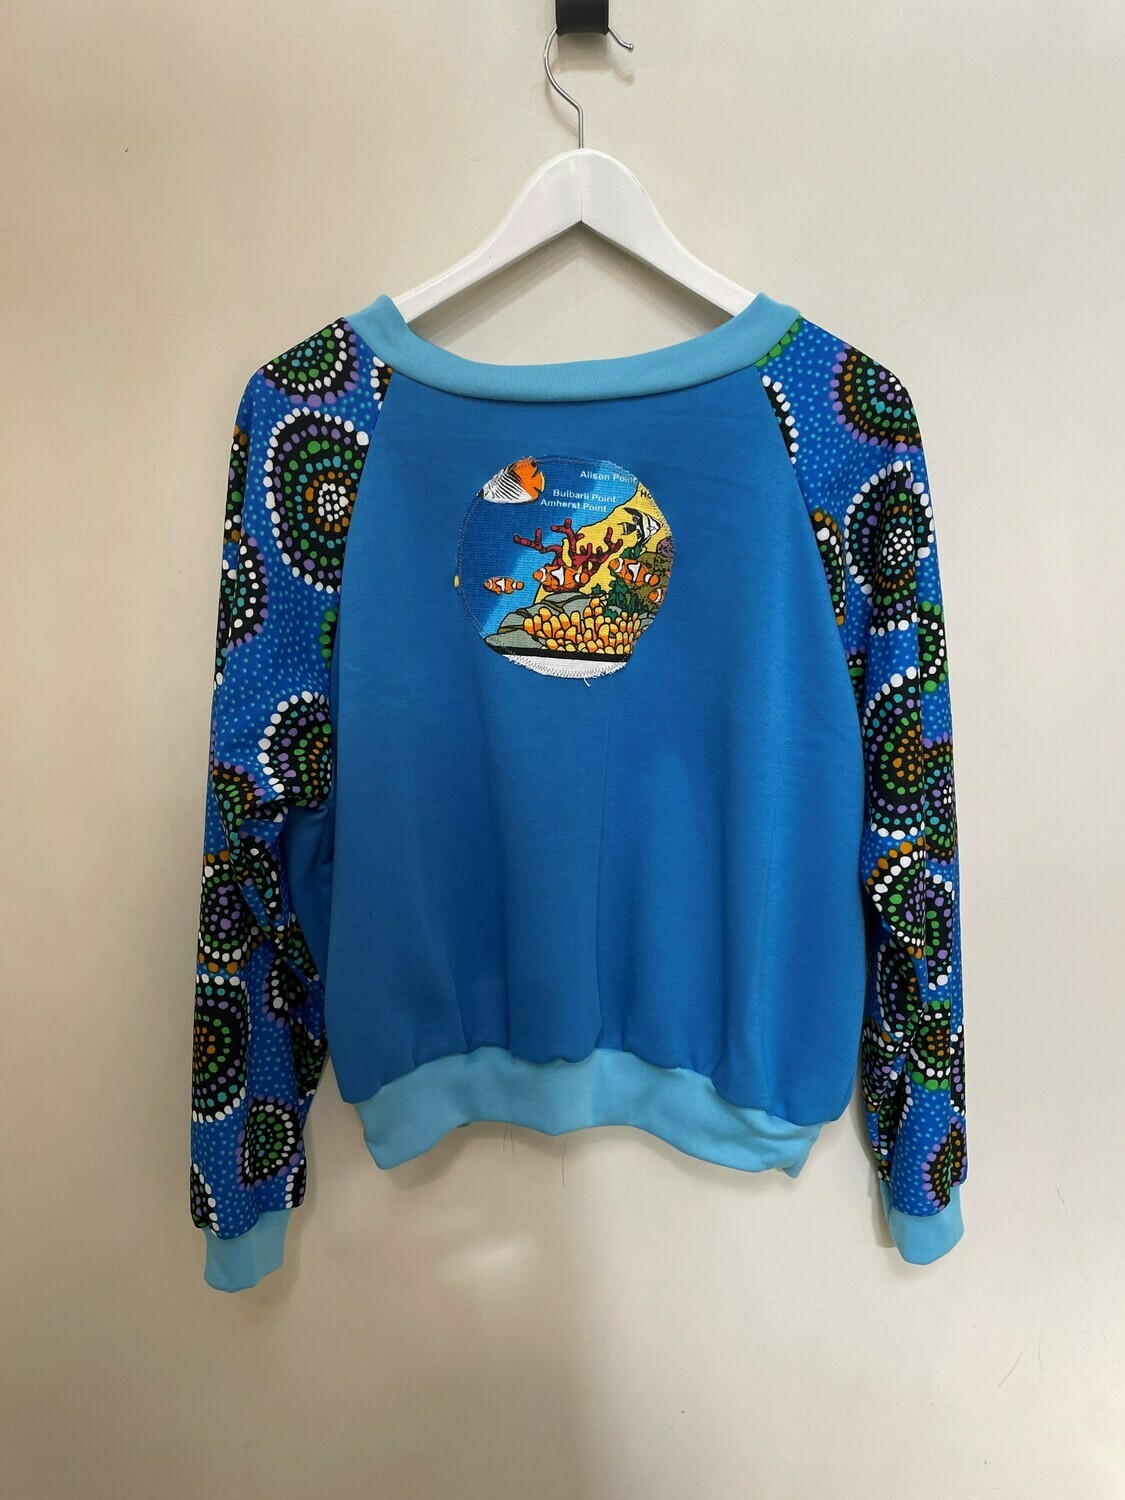 Unsunk Funk Clothing Reef Print Pullover - Free Size